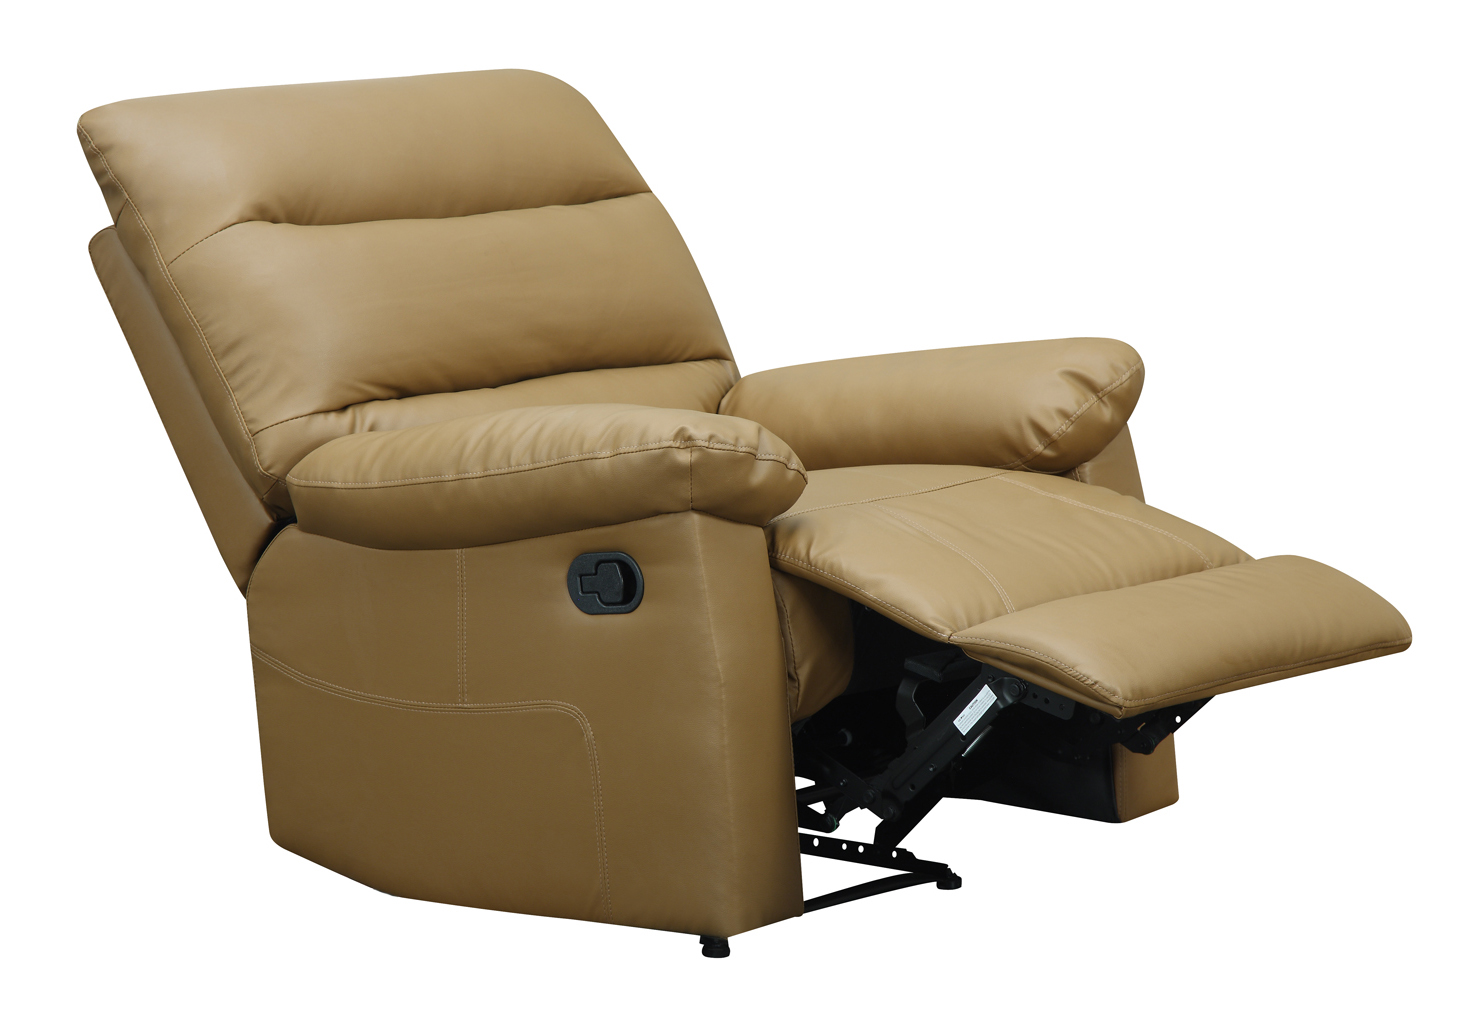 sears recliner chairs ergonomic chair on sale lifestyle solutions preston home furniture